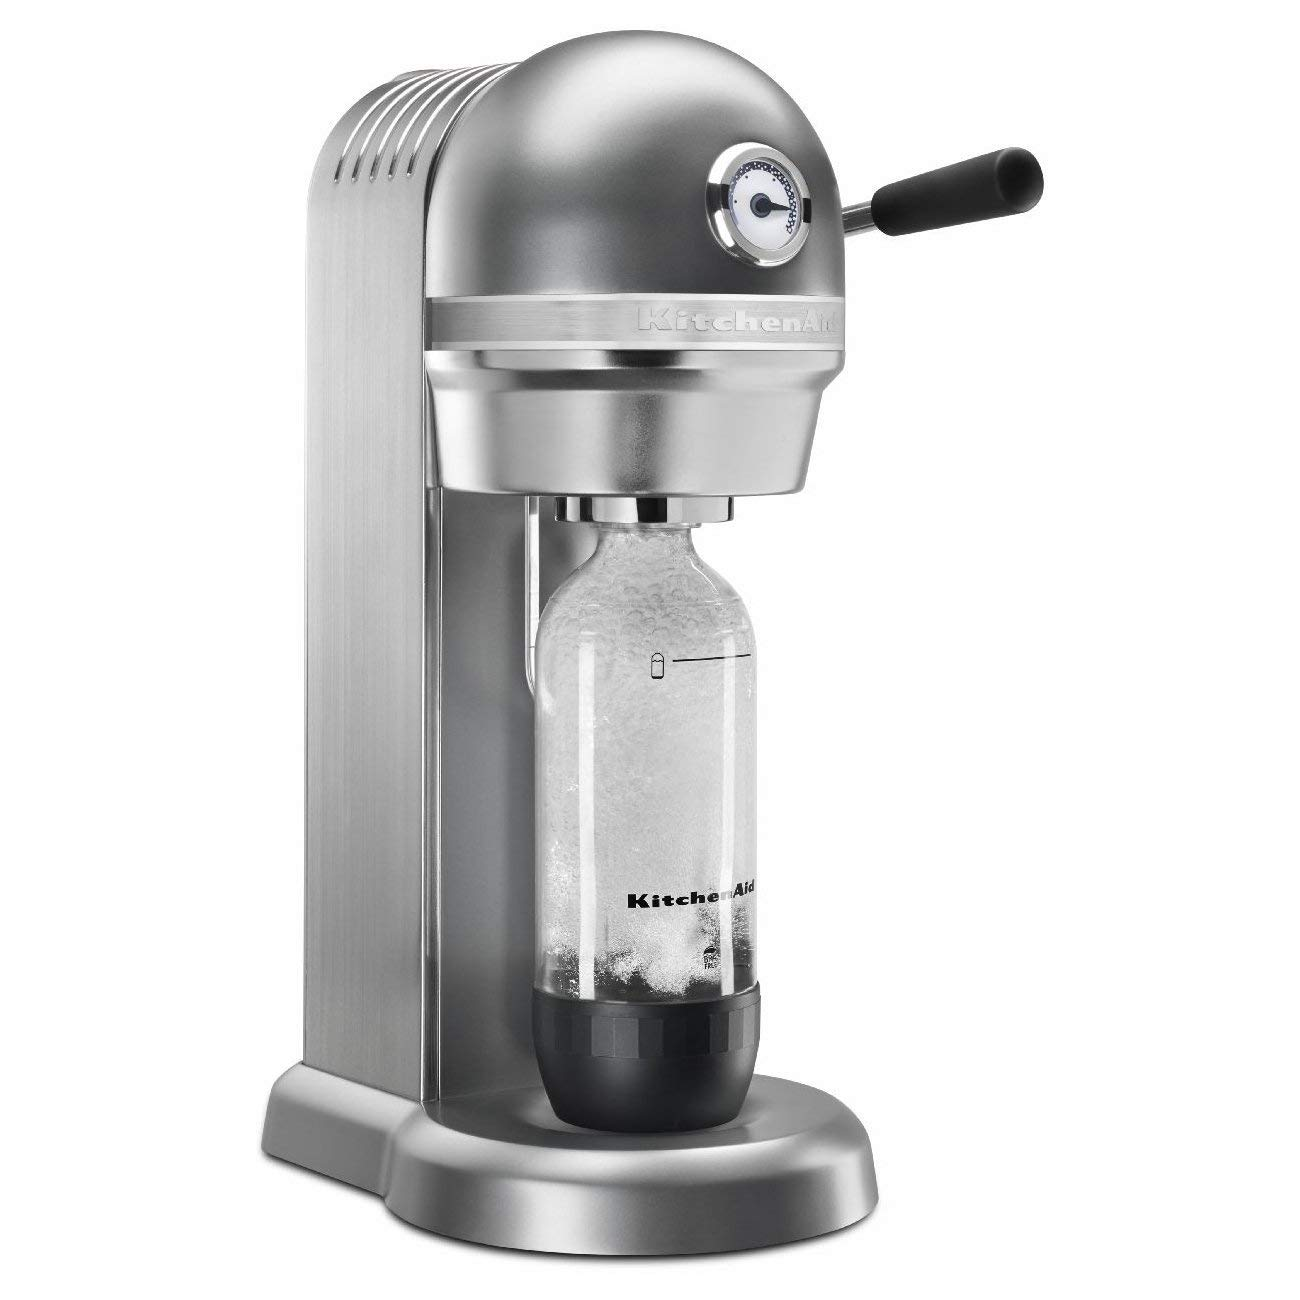 KitchenAid RKSS1121CU Sparkling Beverage Maker, Contour Silver (Renewed) by KitchenAid